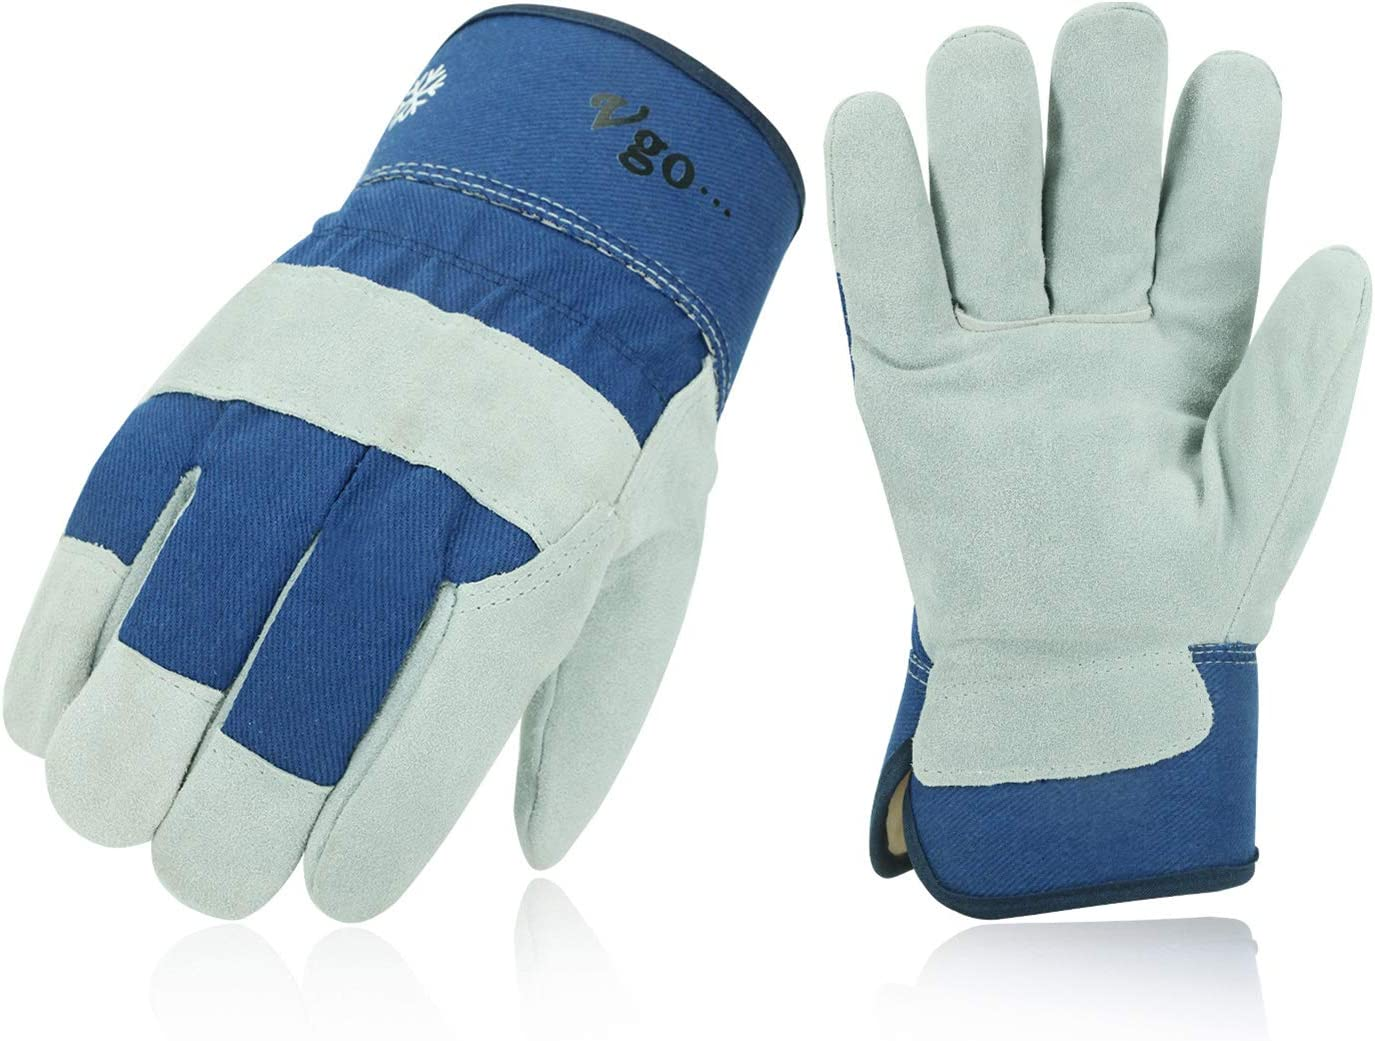 Vgo 3Pairs 32℉ or above Winter Lined Cowhide Split Leather Work and Driver Gloves, For Heavy Duty, Truck Driving, Warehouse, Gardening, Farm (Size L,Blue,CB3501F)